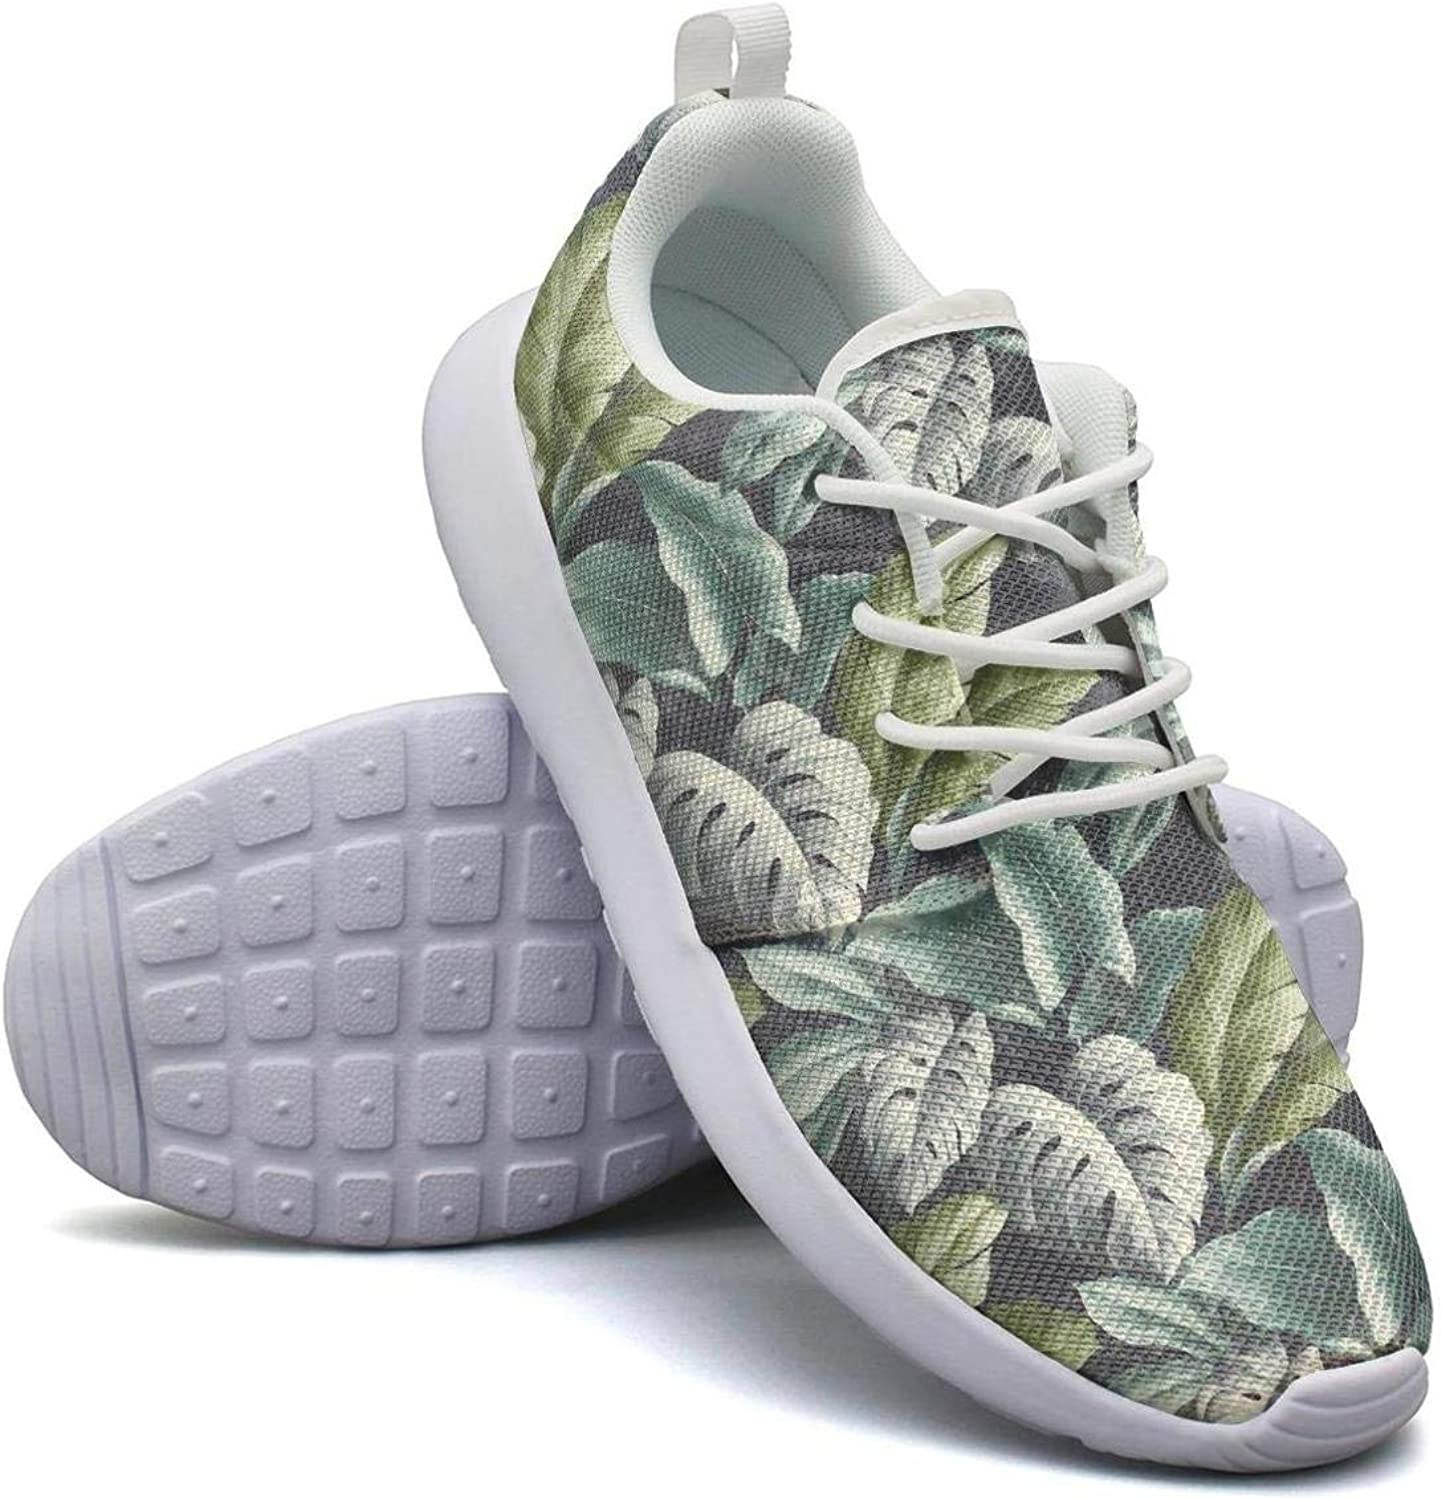 CHALi99 Womens Lightweight Mesh shoes Tropical Leaves Pattern Vintage bluee Sneakers Travel Shock Absorbing